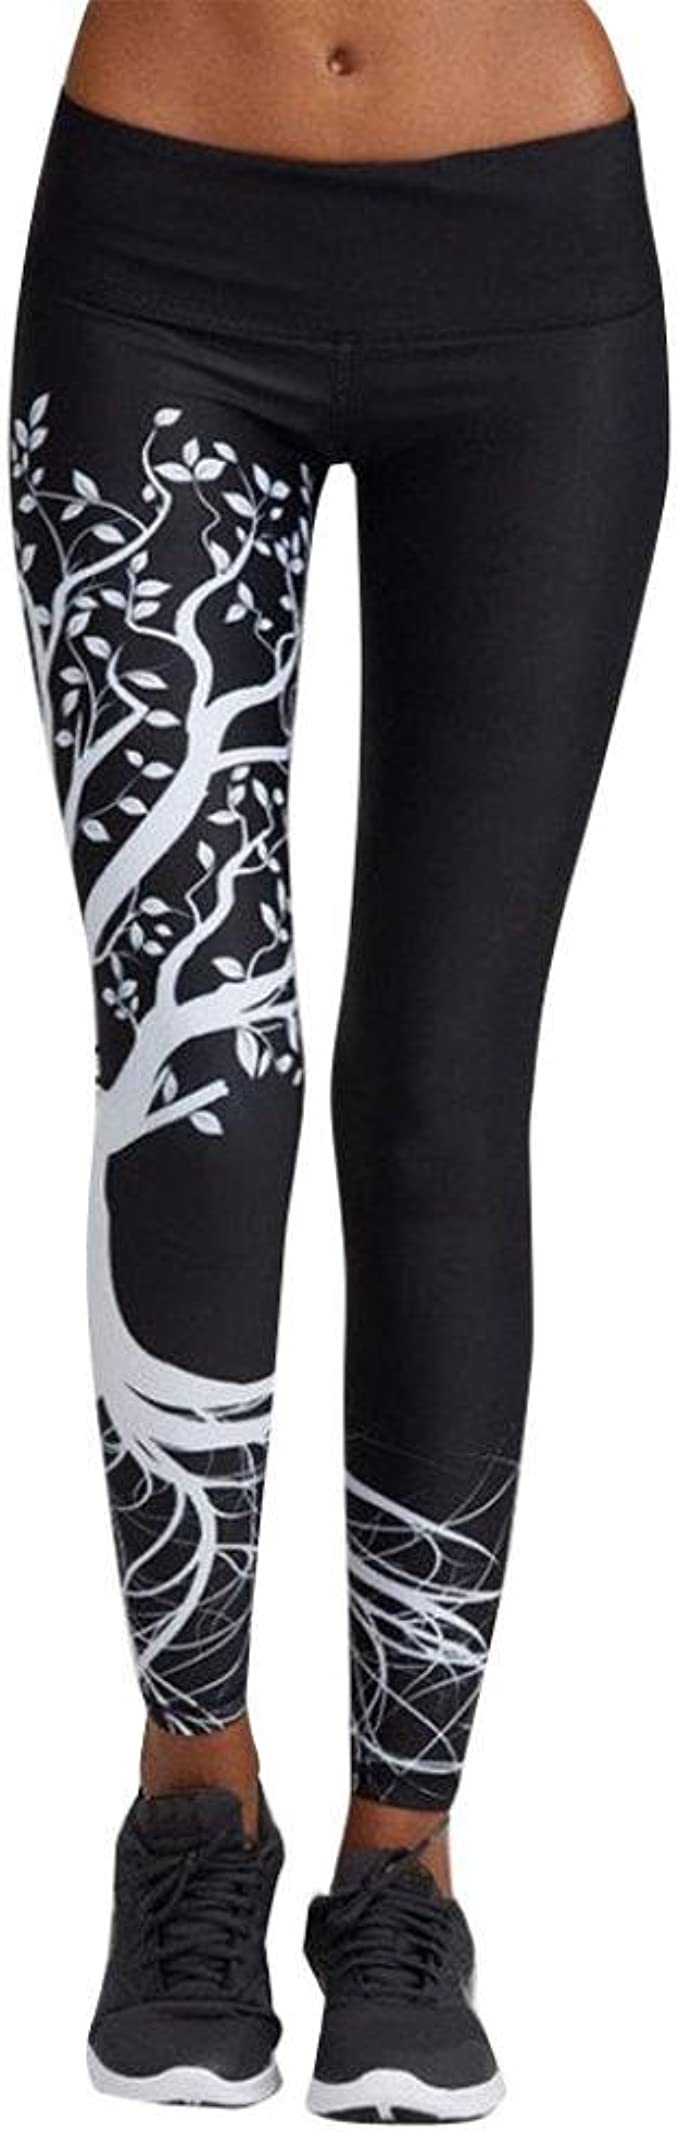 Women Leggings, Gillberry Women Sports Trousers Athletic Gym Workout Fitness Yoga Leggings Pants for Women